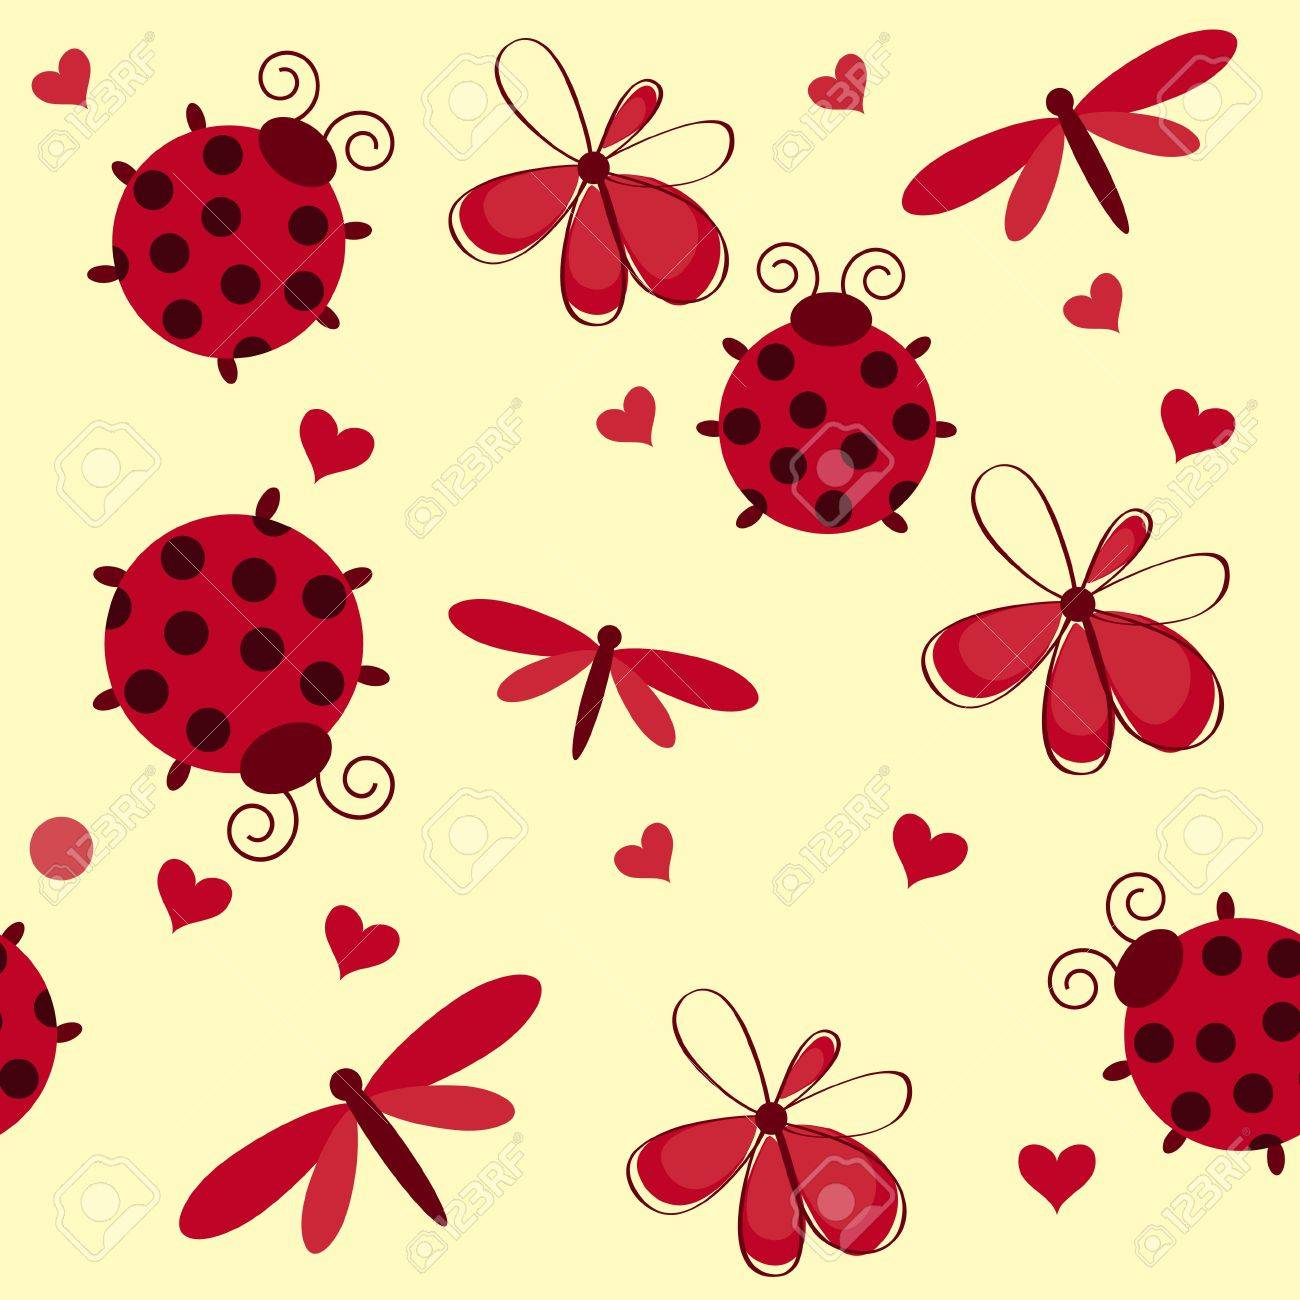 Romantic seamless pattern with dragonflies, ladybugs, hearts and flowers on a white background Stock Vector - 13758524